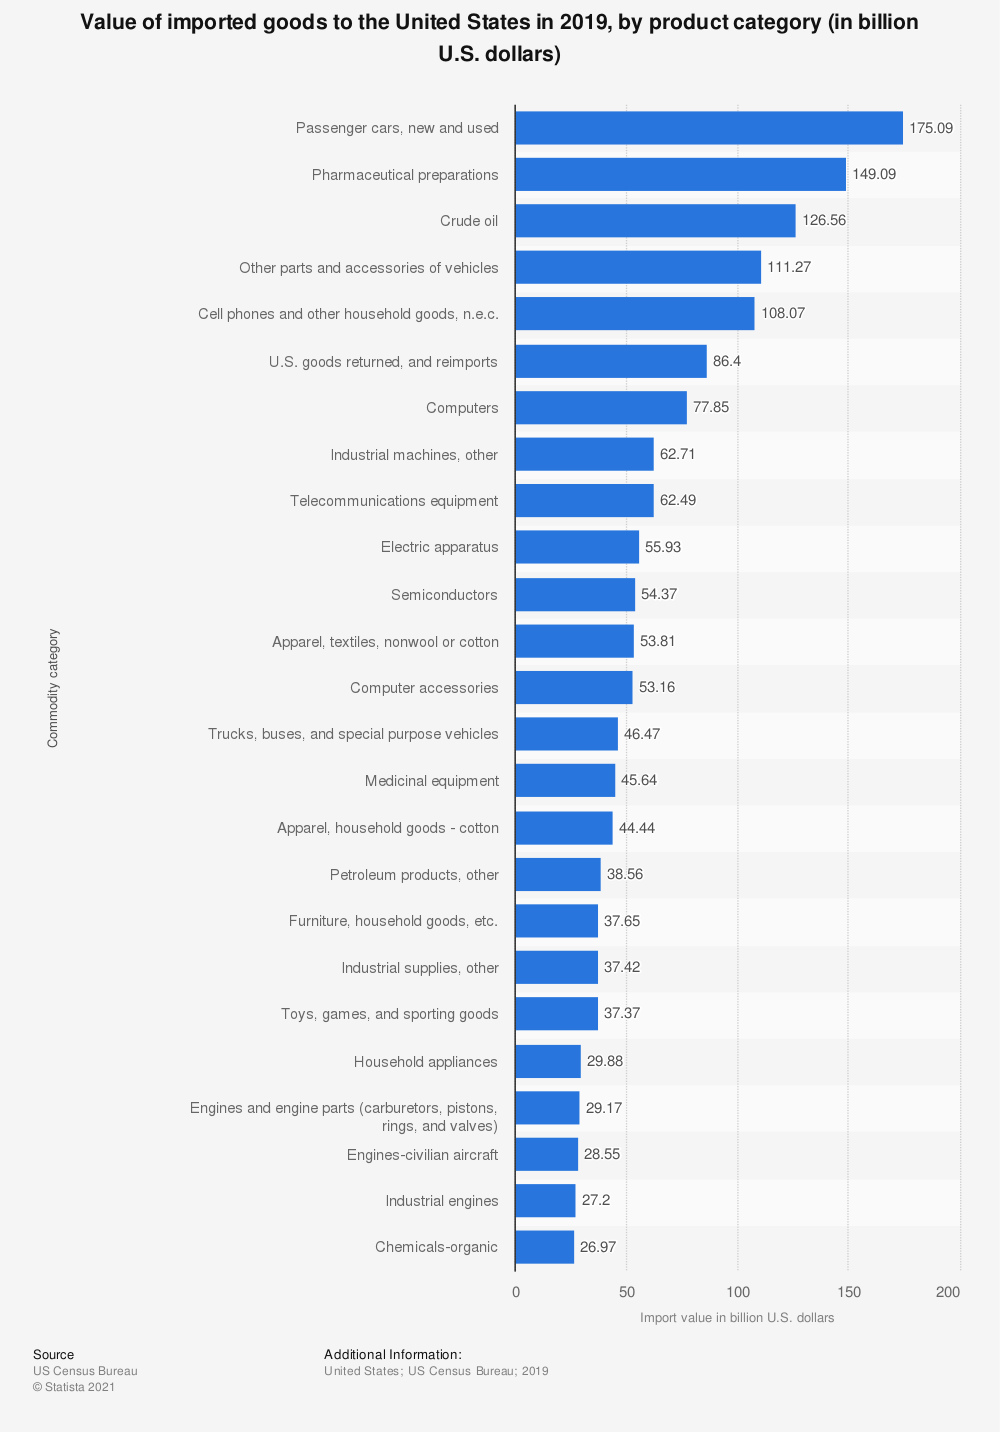 Statistic: Value of imported goods to the United States in 2019, by product category (in billion U.S. dollars) | Statista